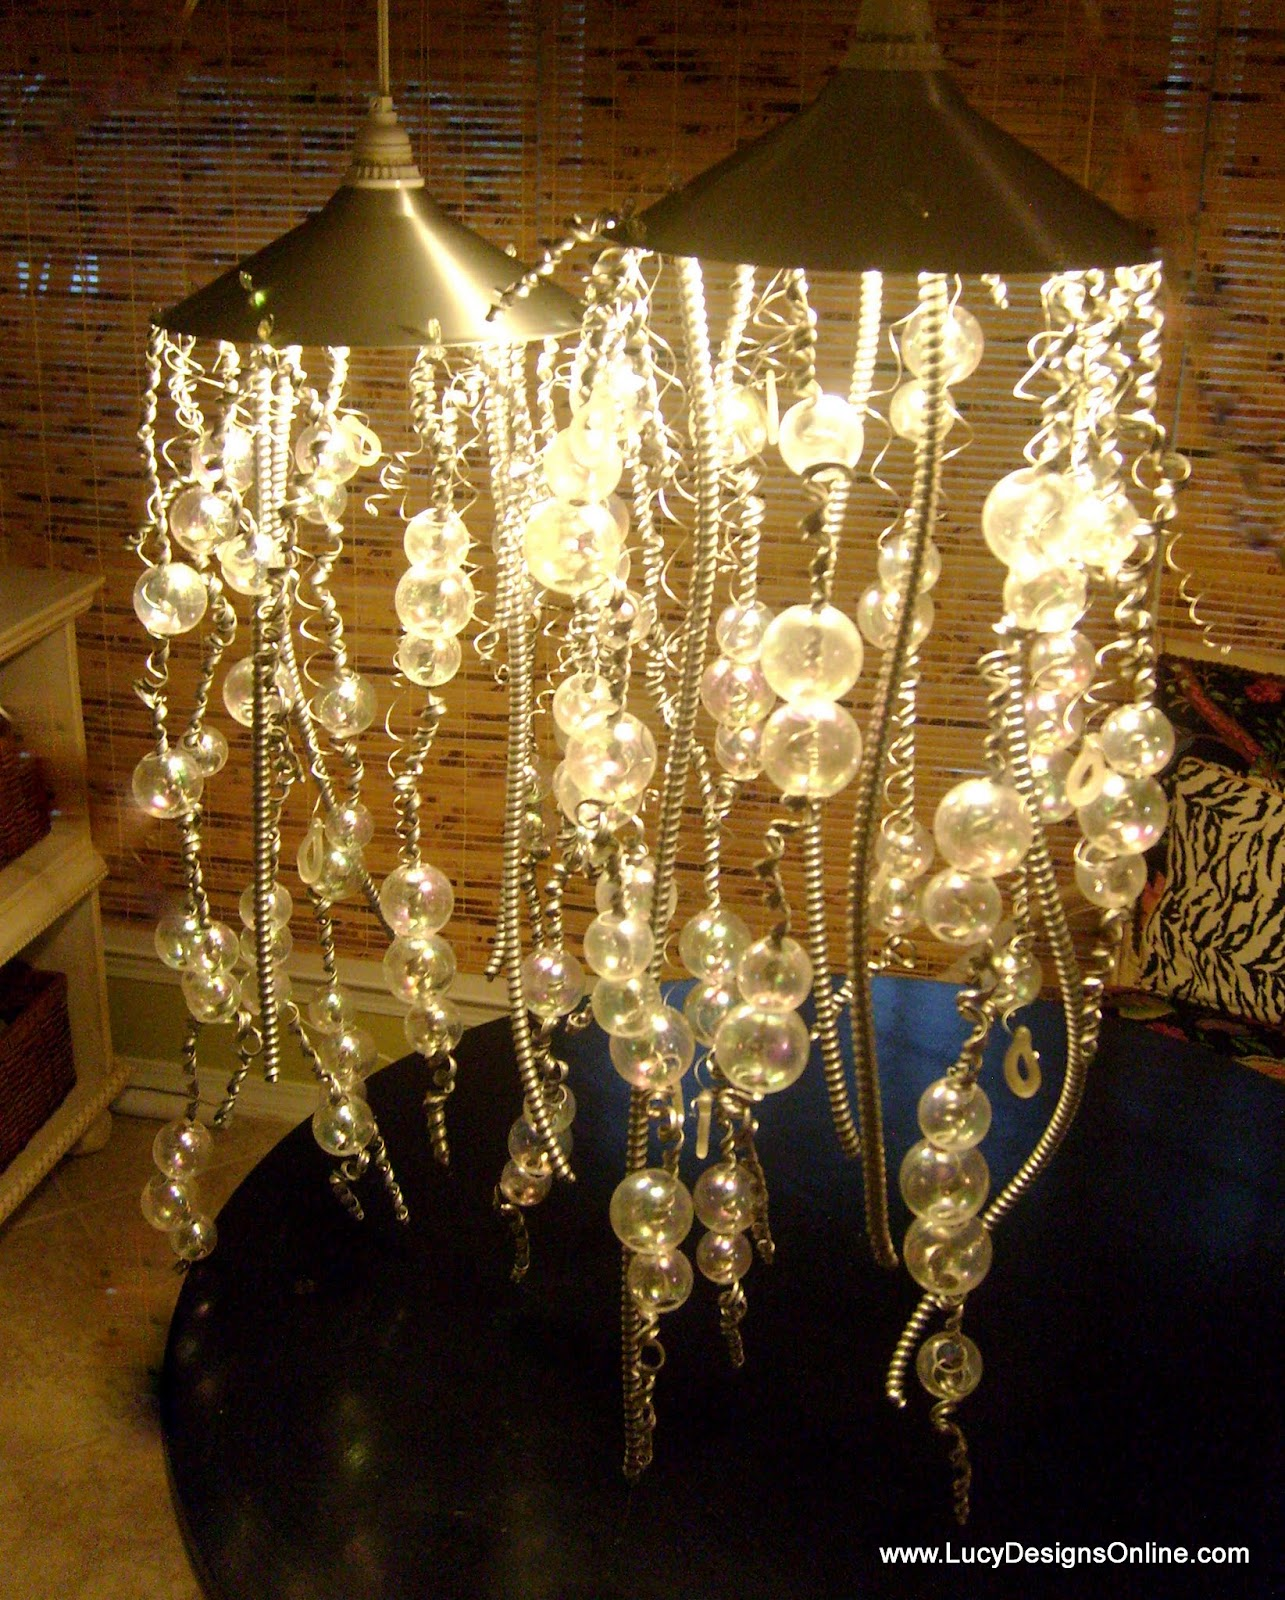 Hand Made Jellyfish Lights Using Recycled Christmas Lights and